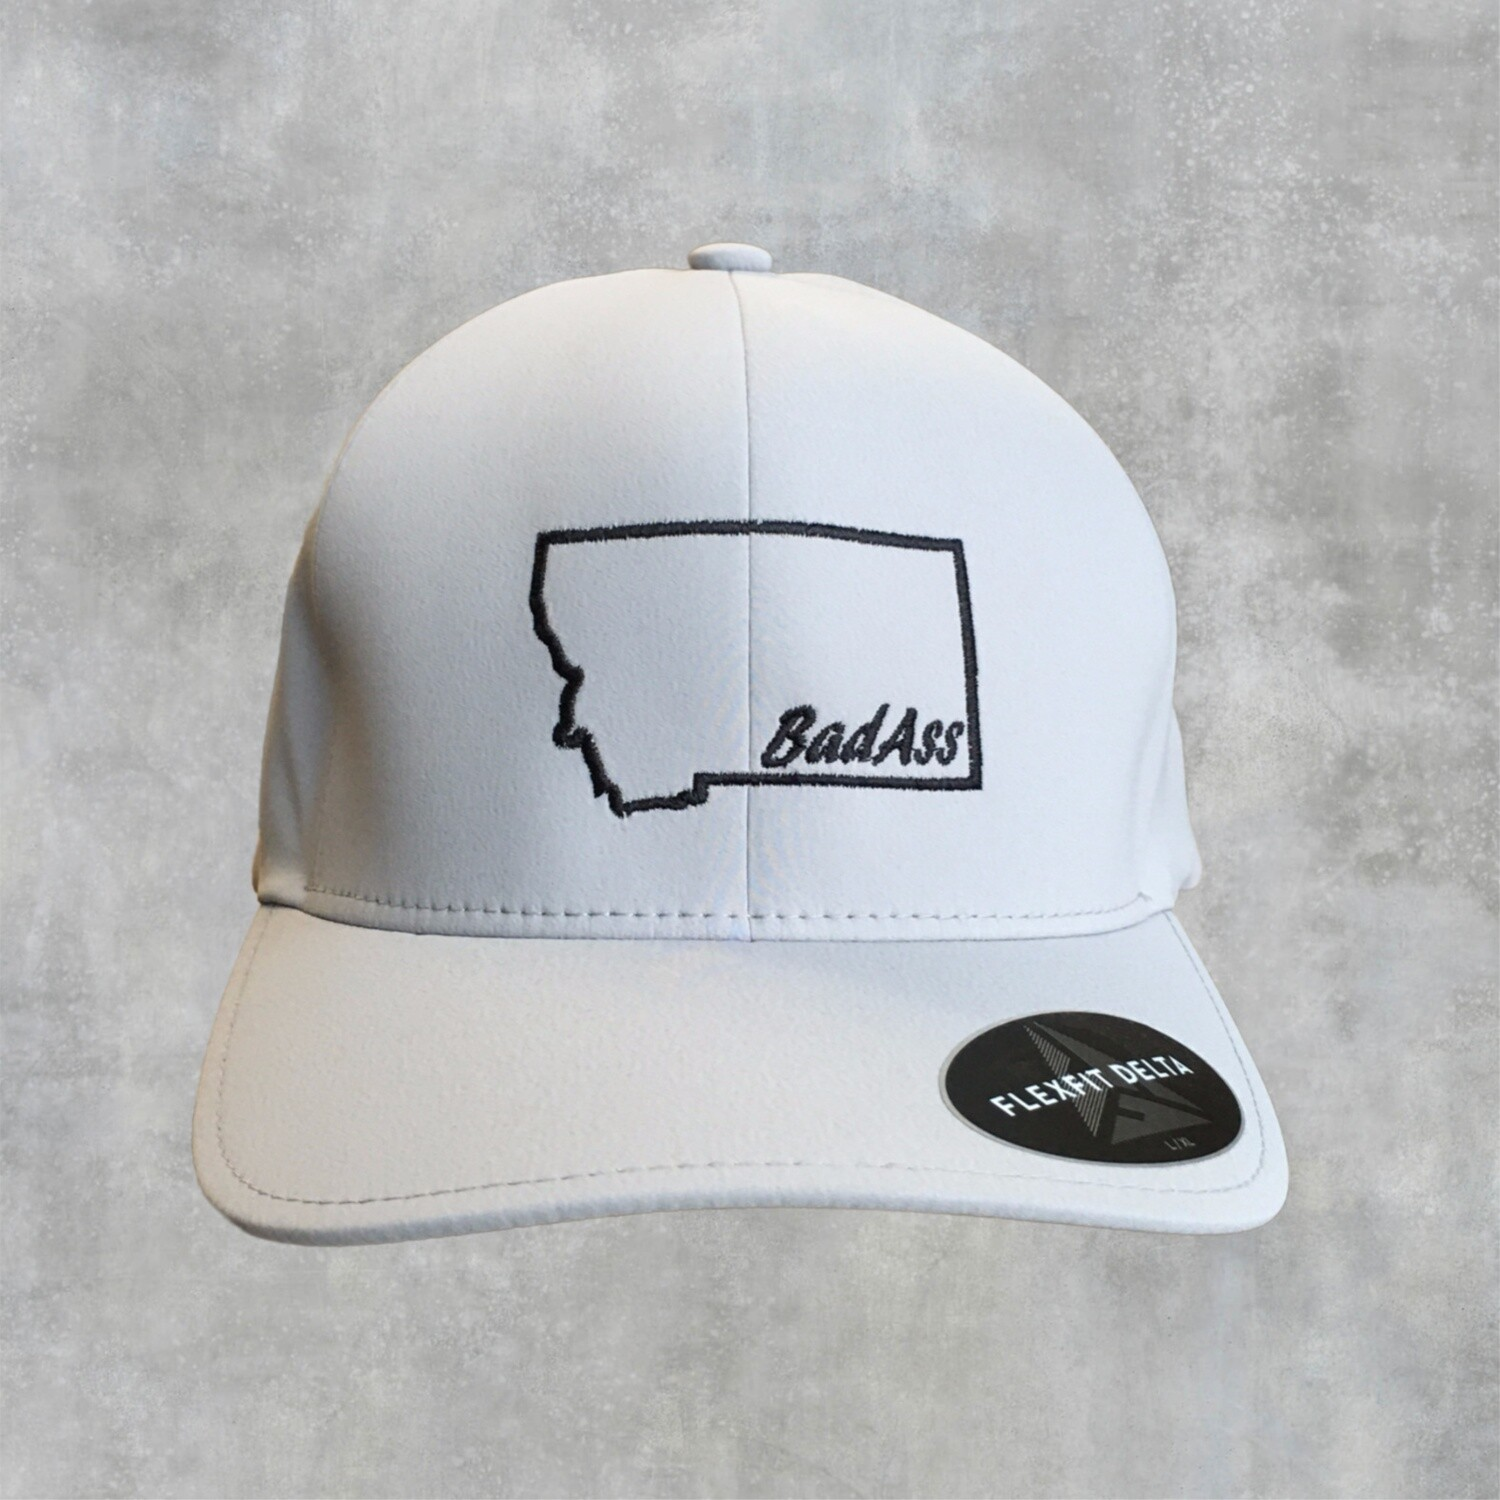 BadAss -Embroidered - Flex Fit Delta Seamless Cap